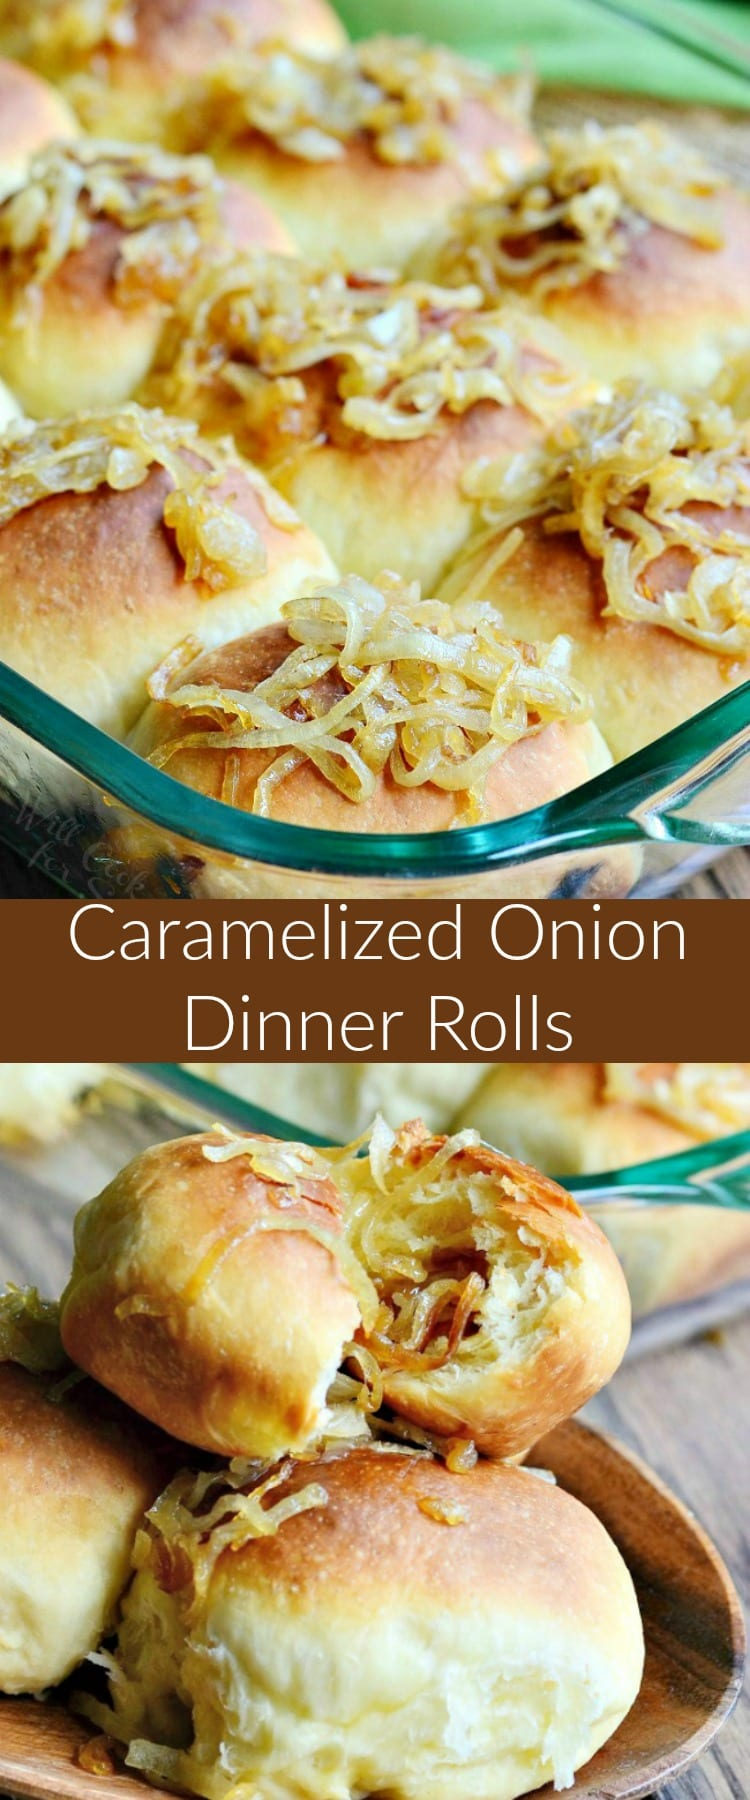 Caramelized Onion Dinner Rolls. Soft and comforting homemade dinner rolls. These scrumptious rolls are made out of easy yeast dough and filled with delicious caramelized onions. #bread #dinnerrolls #rolls #yeastdough #onion #caramelizedonion #sidedish